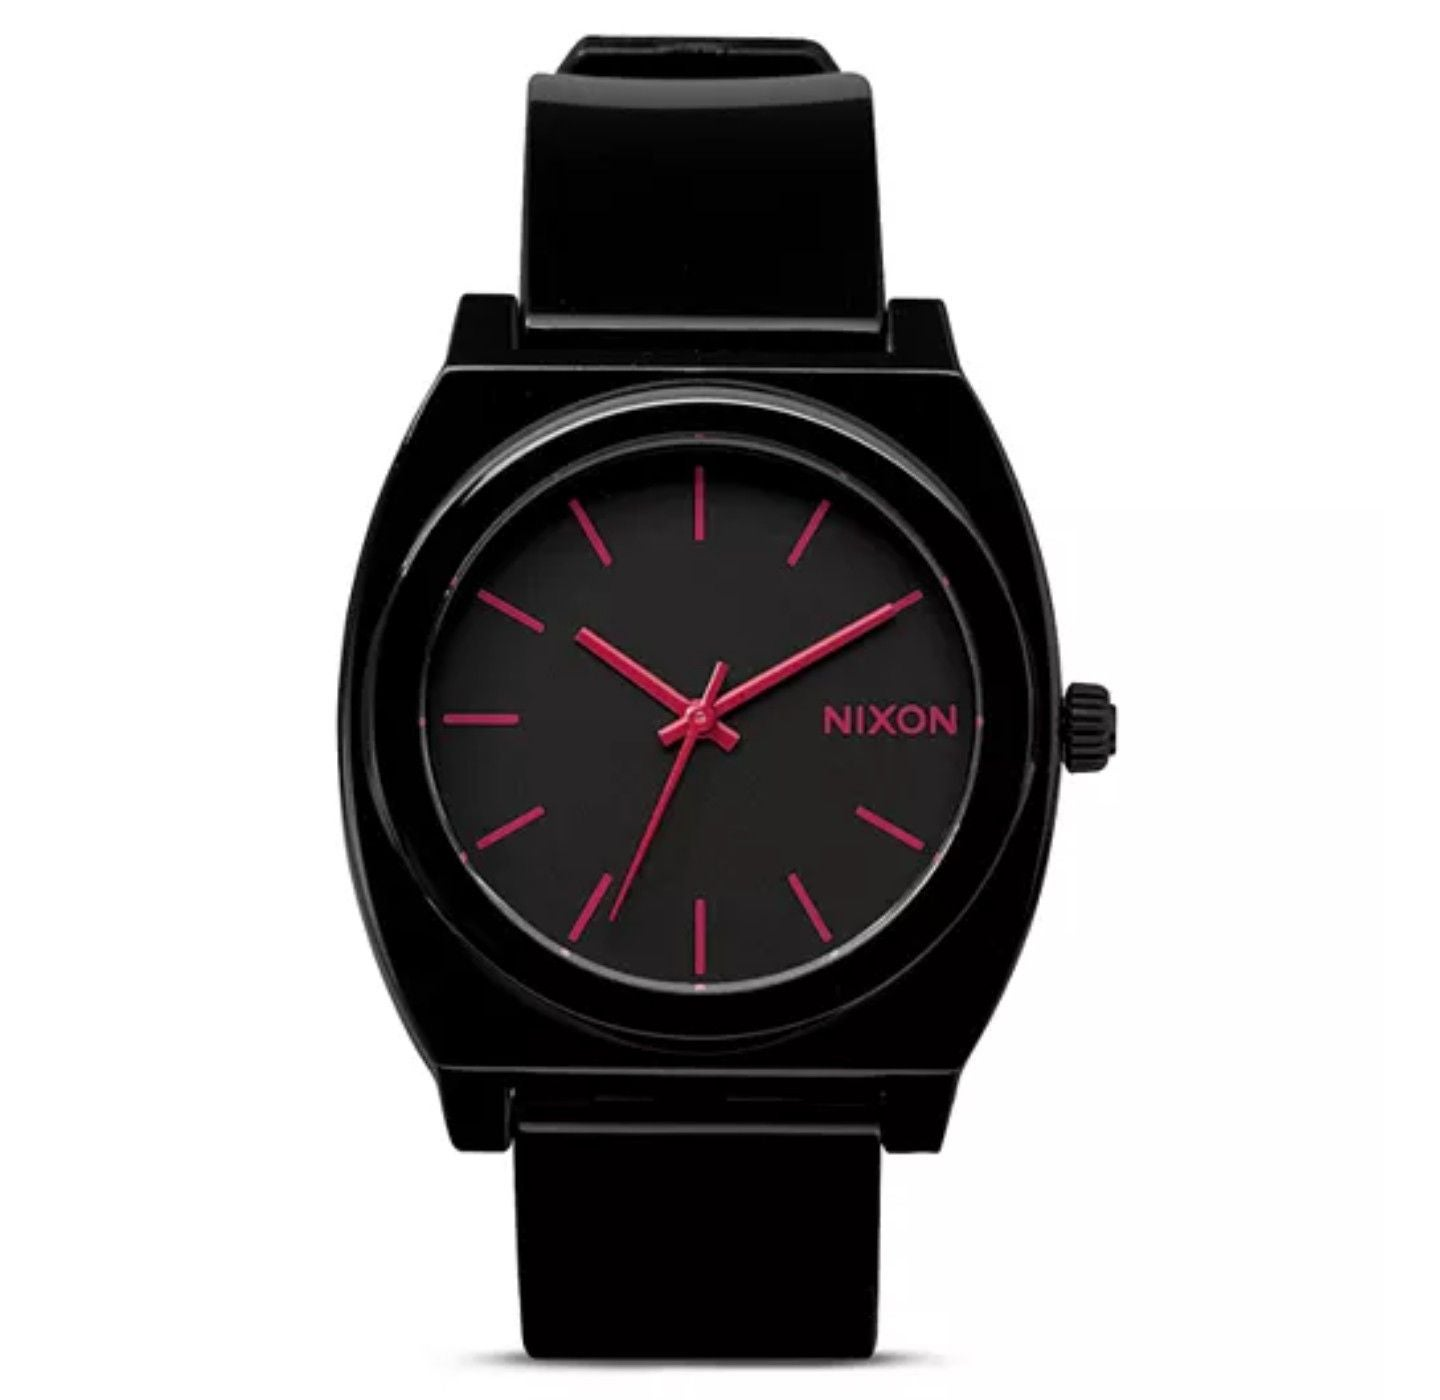 Nixon Minimal Watch pink and black